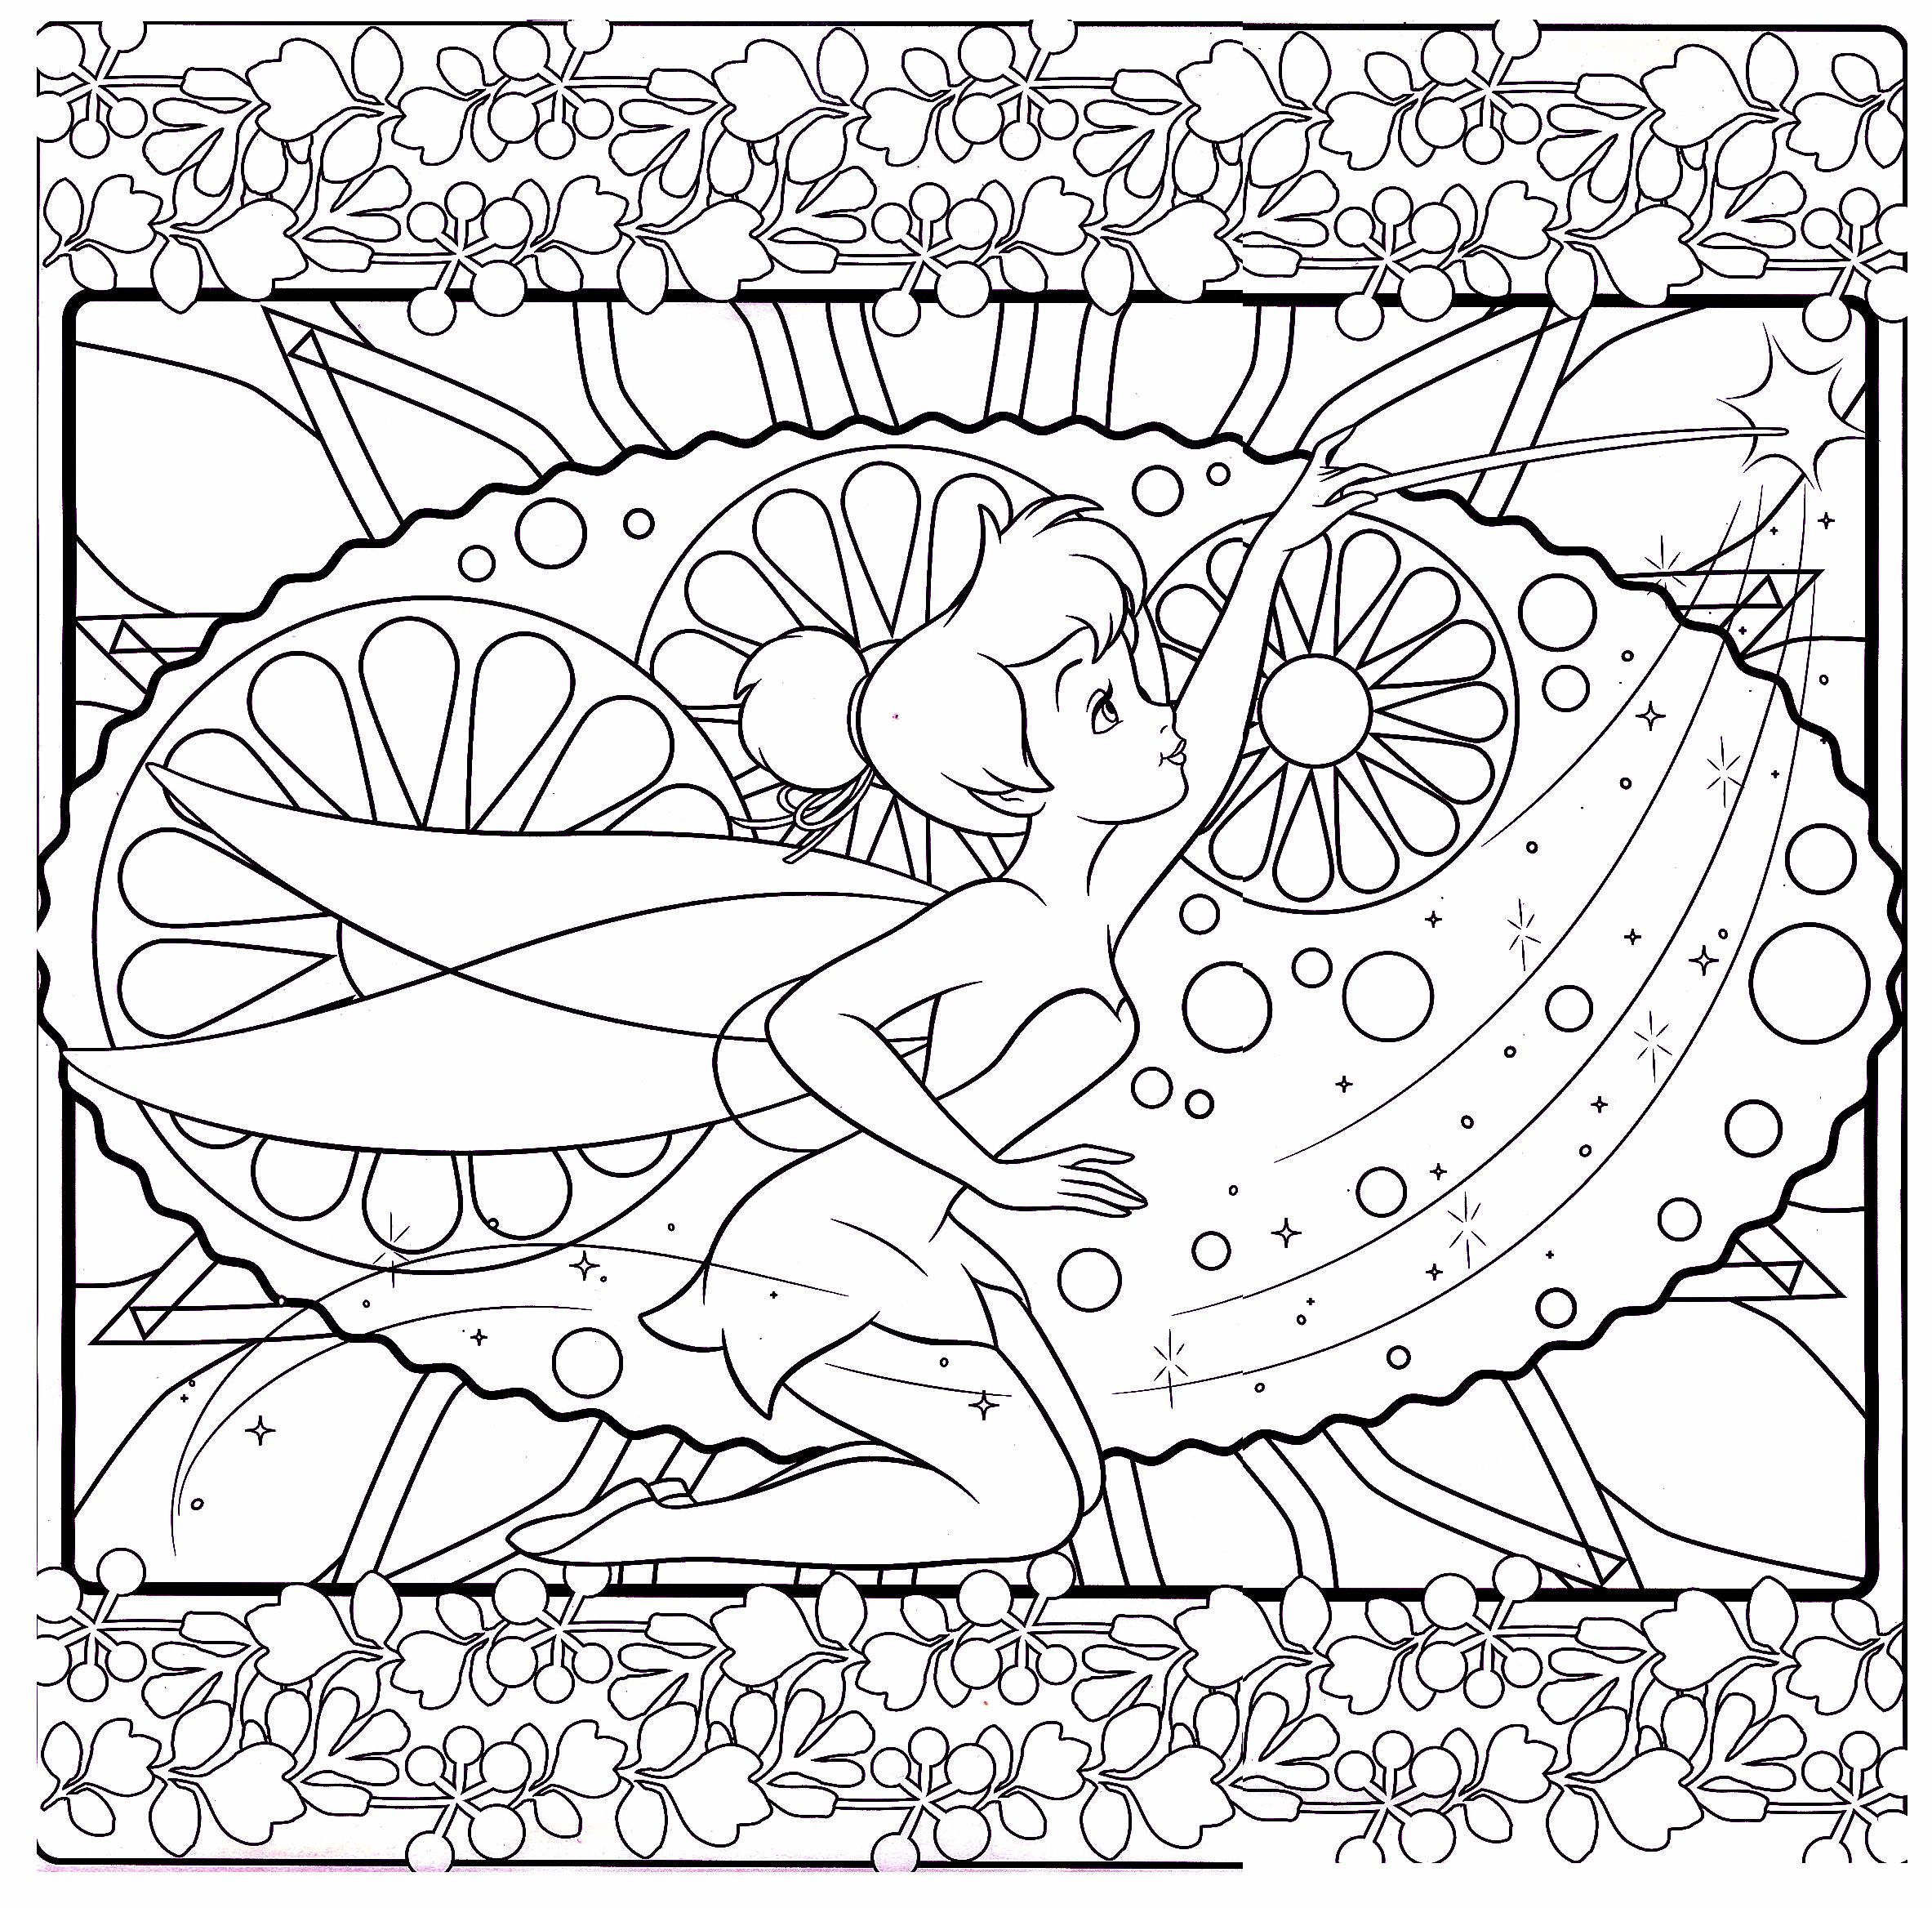 Tinkerbell Difficult Coloring Page Tinkerbell Coloring Pages Coloring Books Cute Coloring Pages